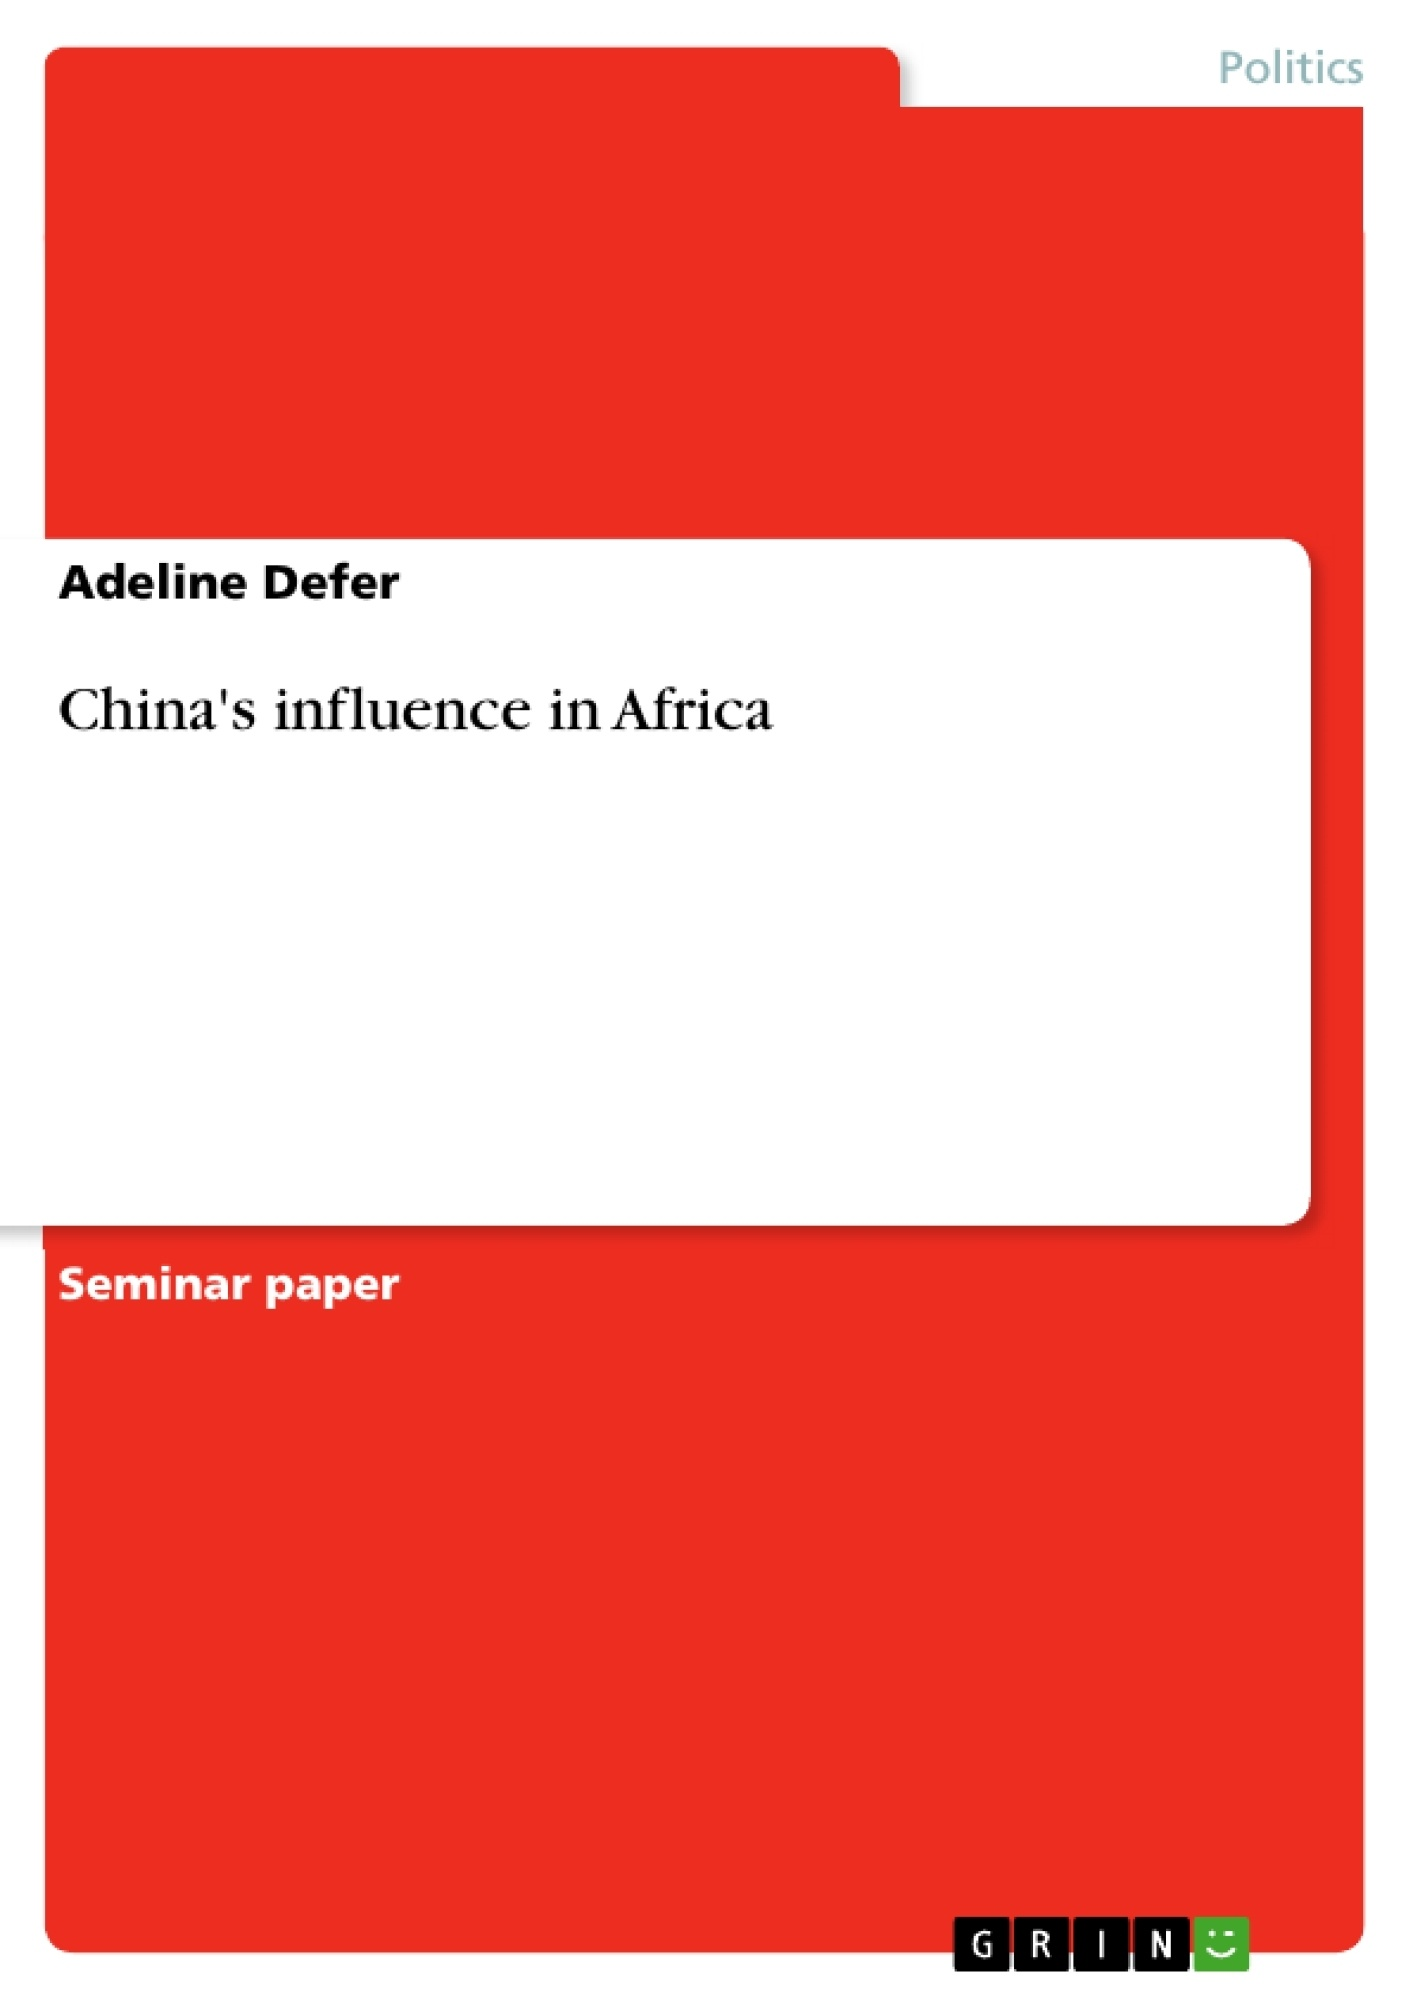 Title: China's influence in Africa